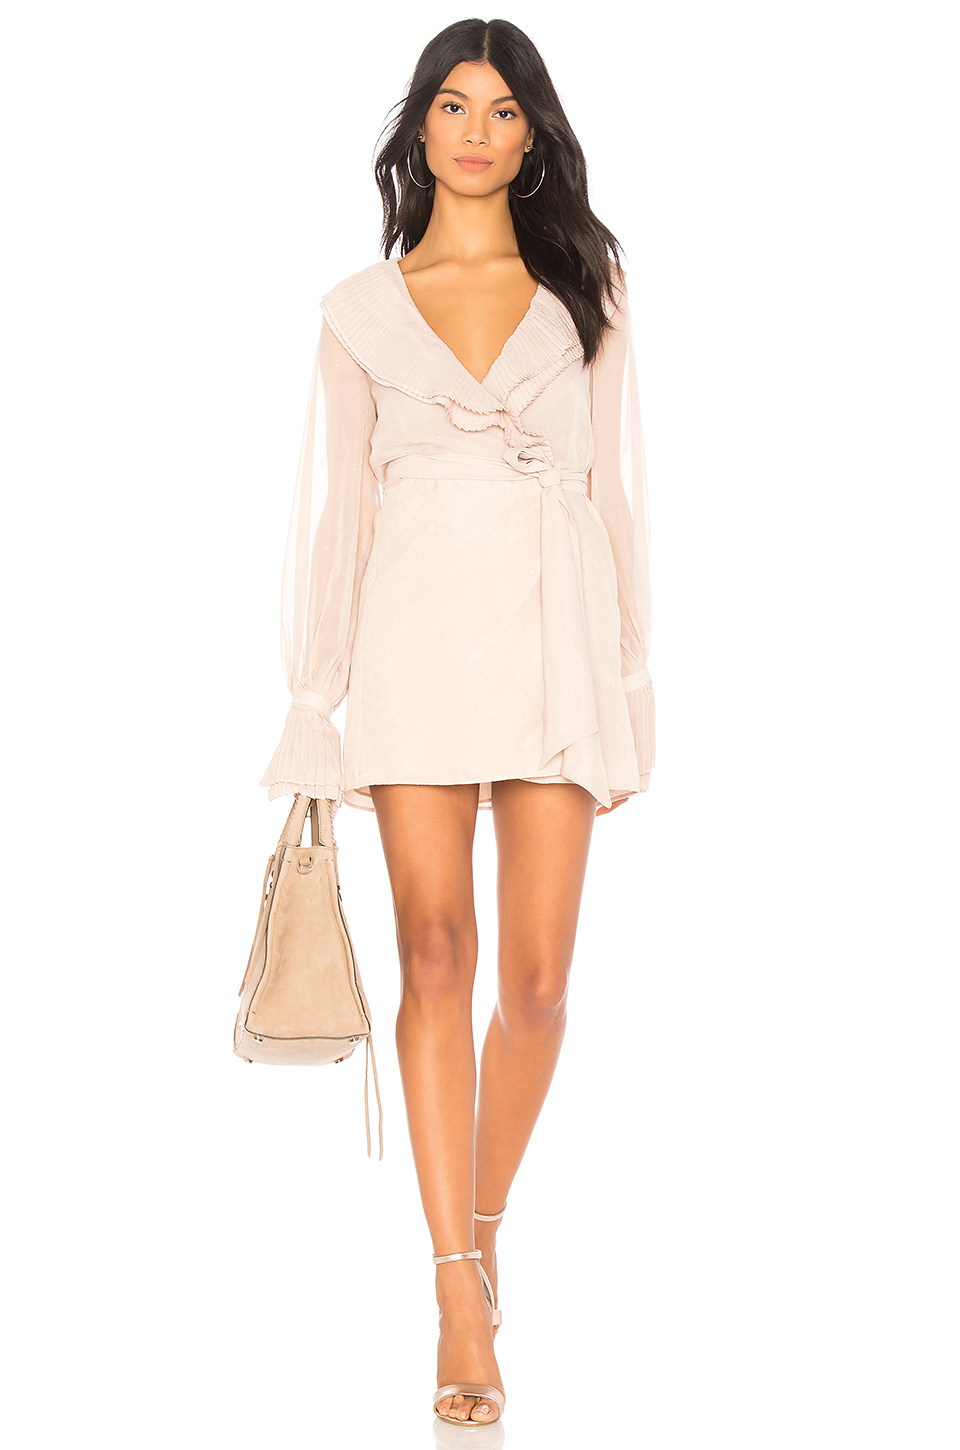 9c7f1156da Chrissy Teigen s new collab with REVOLVE is available